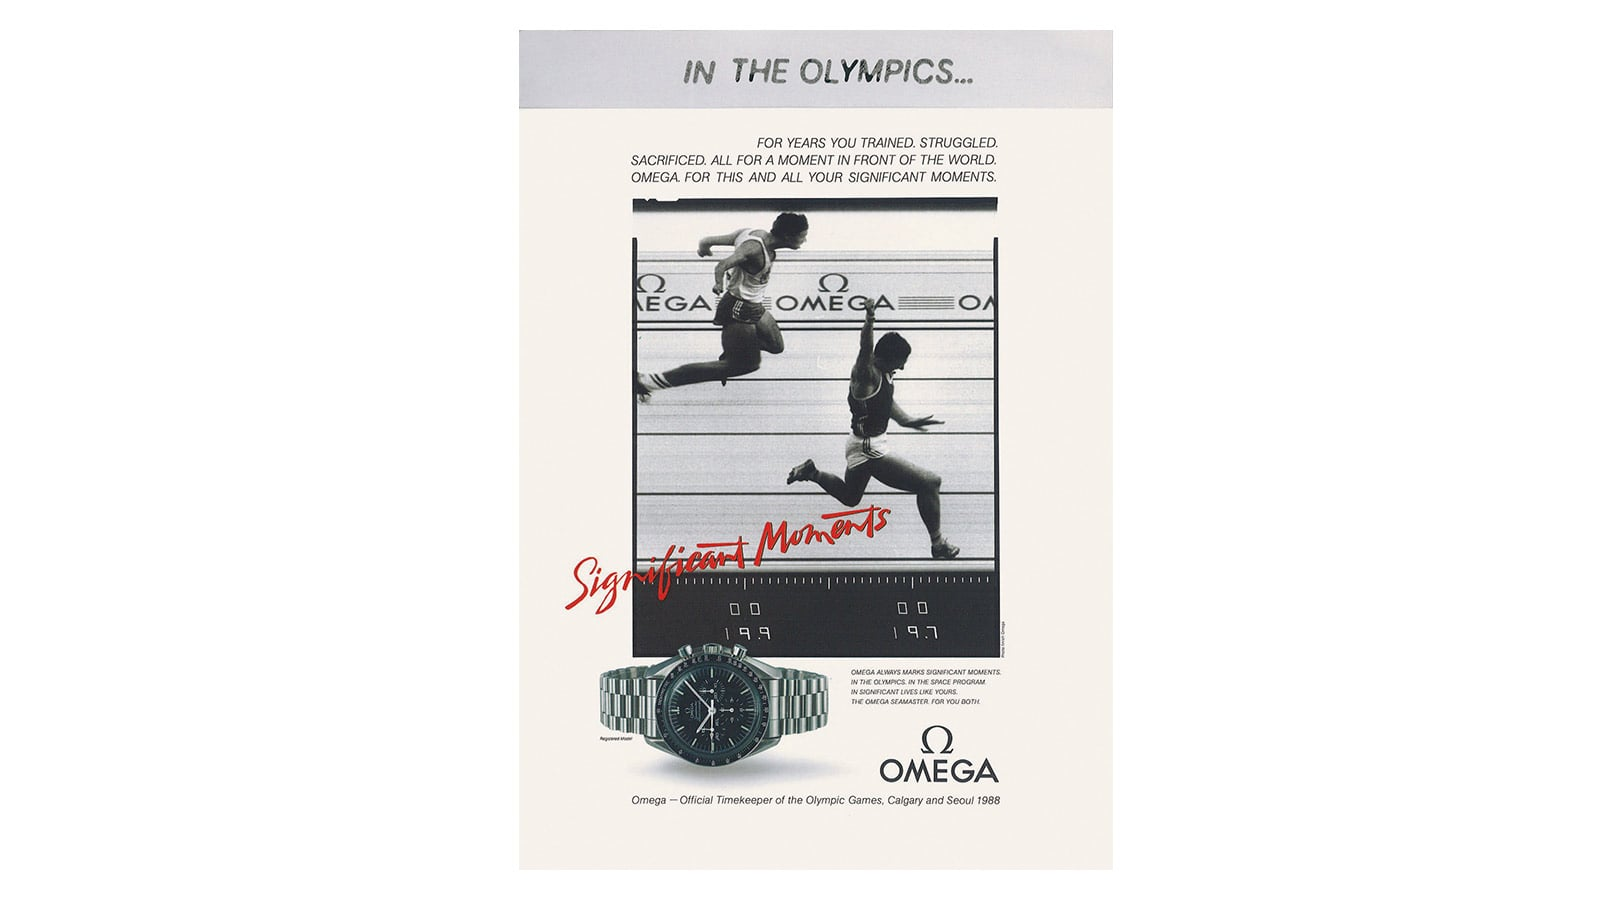 Olympic Games : a race proudly won by OMEGA - Slide 7 - 413